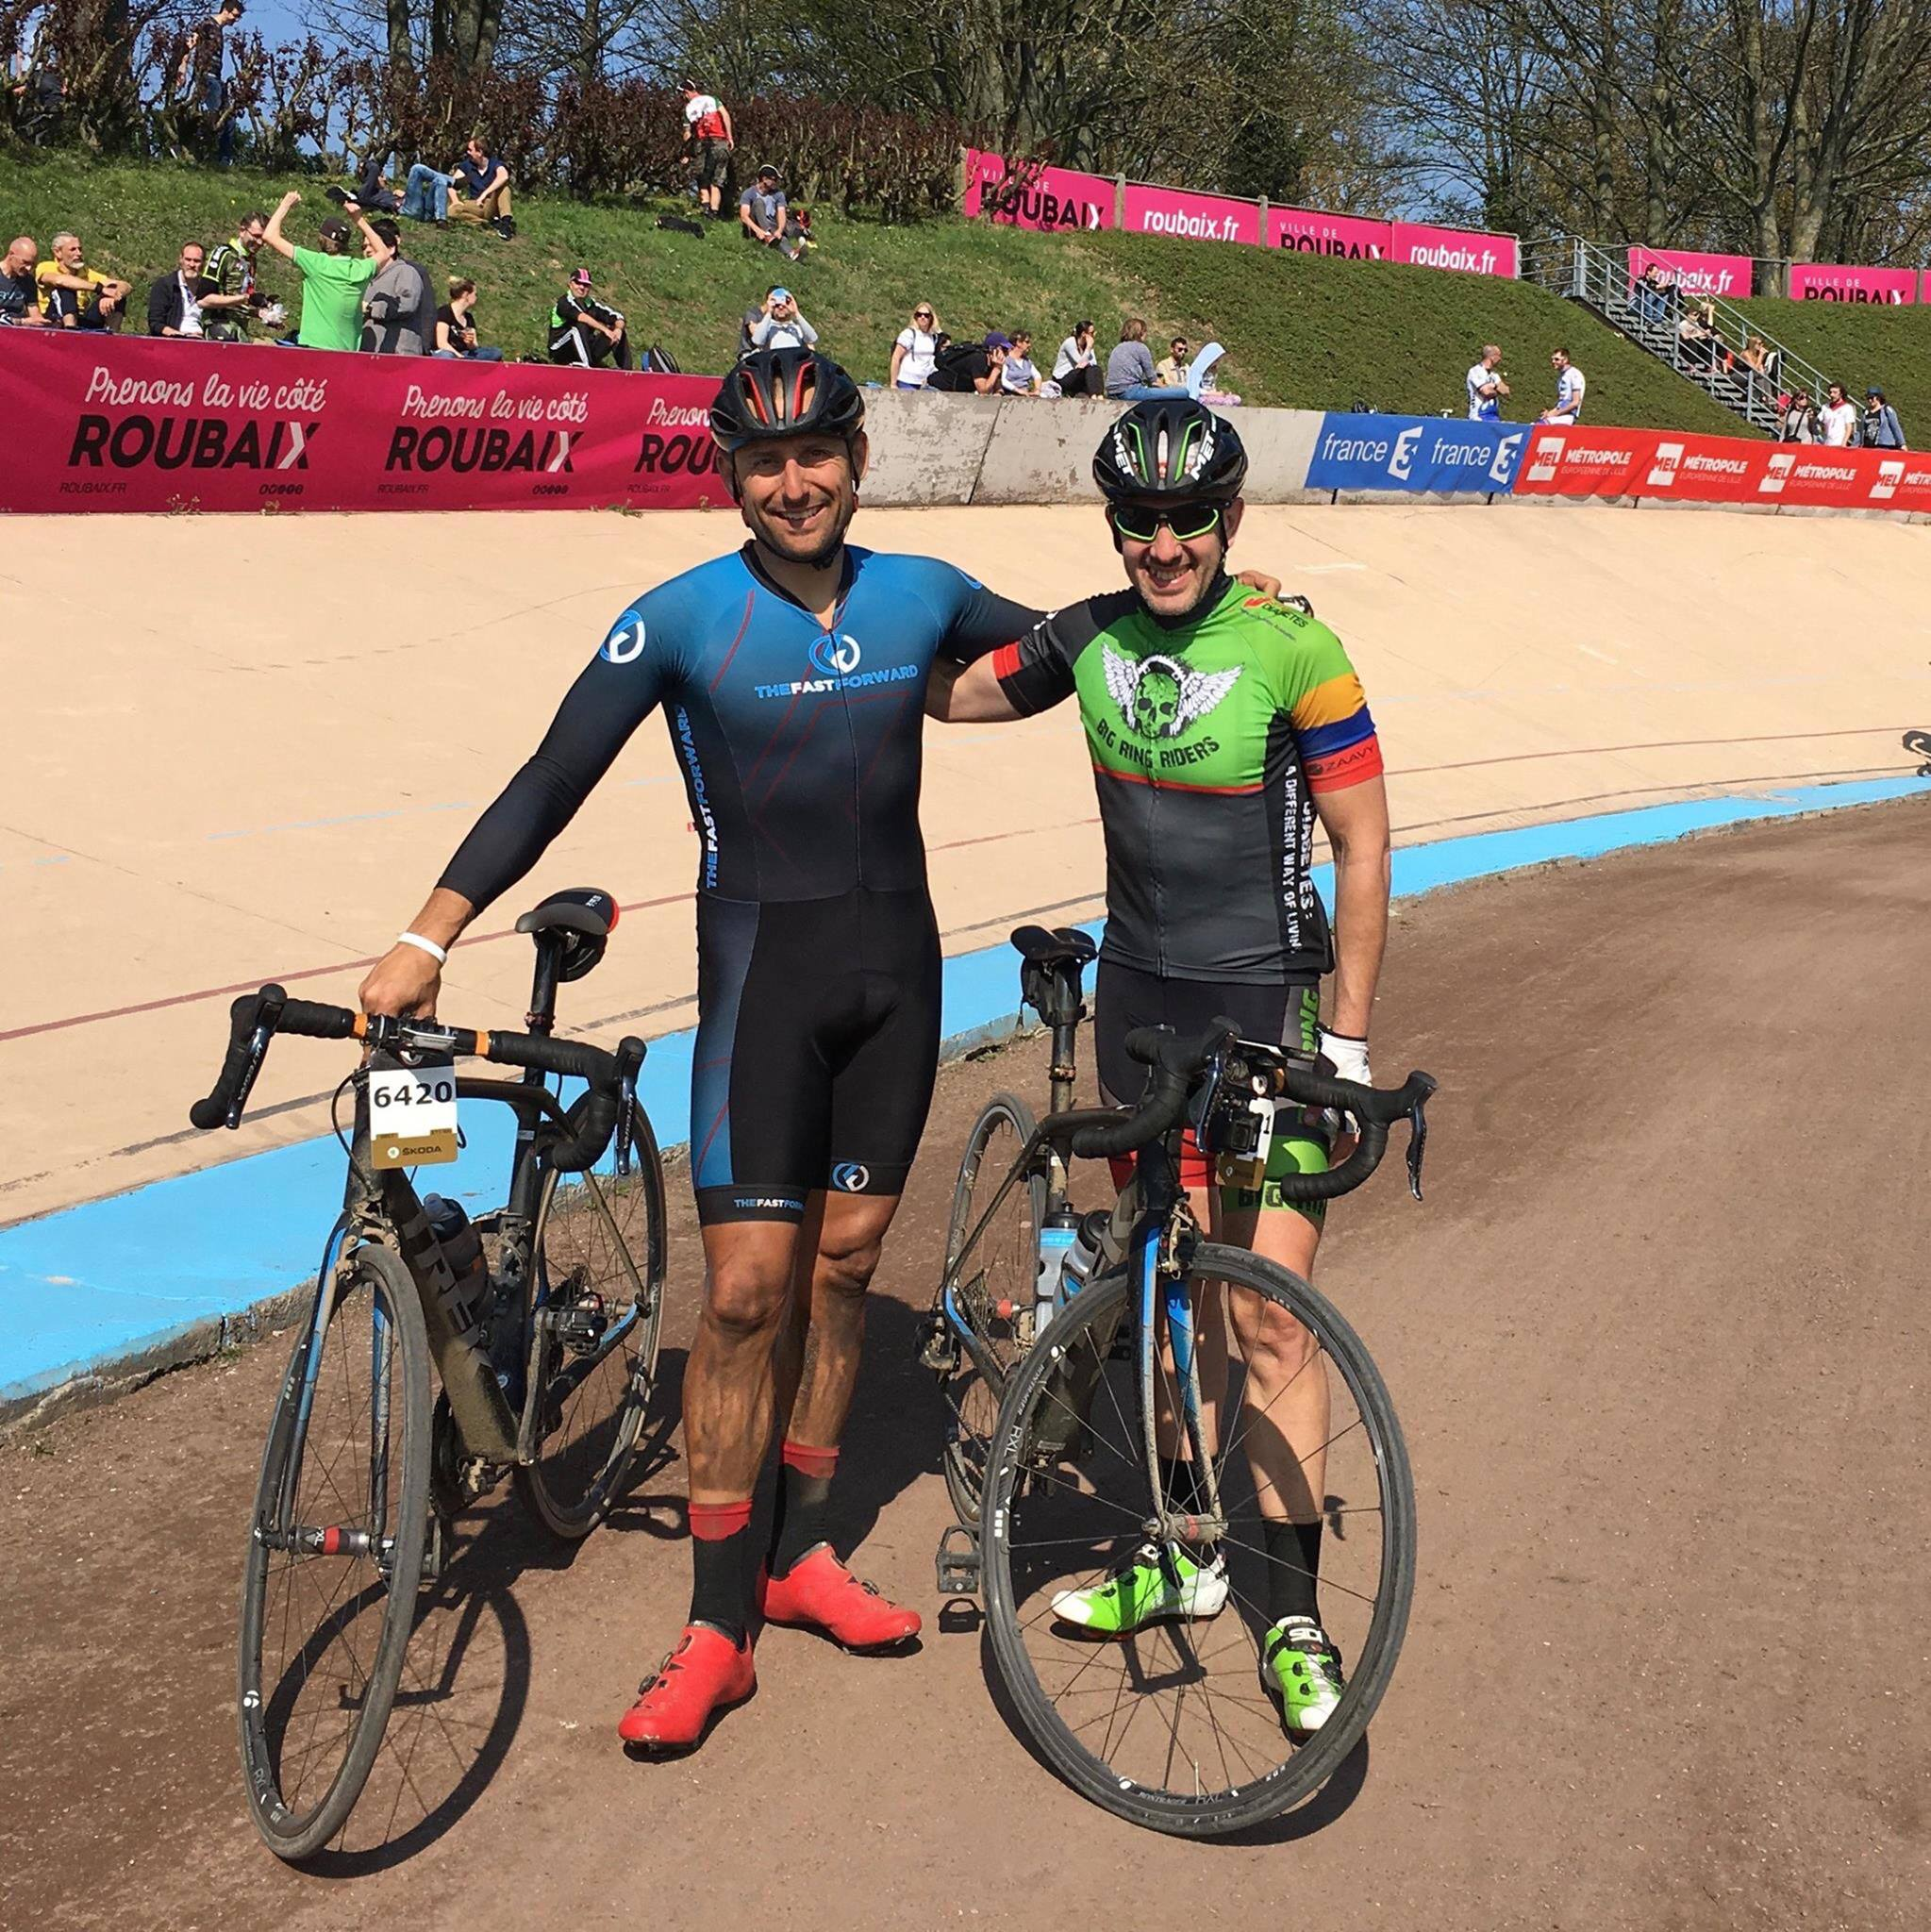 Fast Forward Founder Pat Miller and Big Ring Rider Founder Warren Marshall post Paris Roubaix 2017.